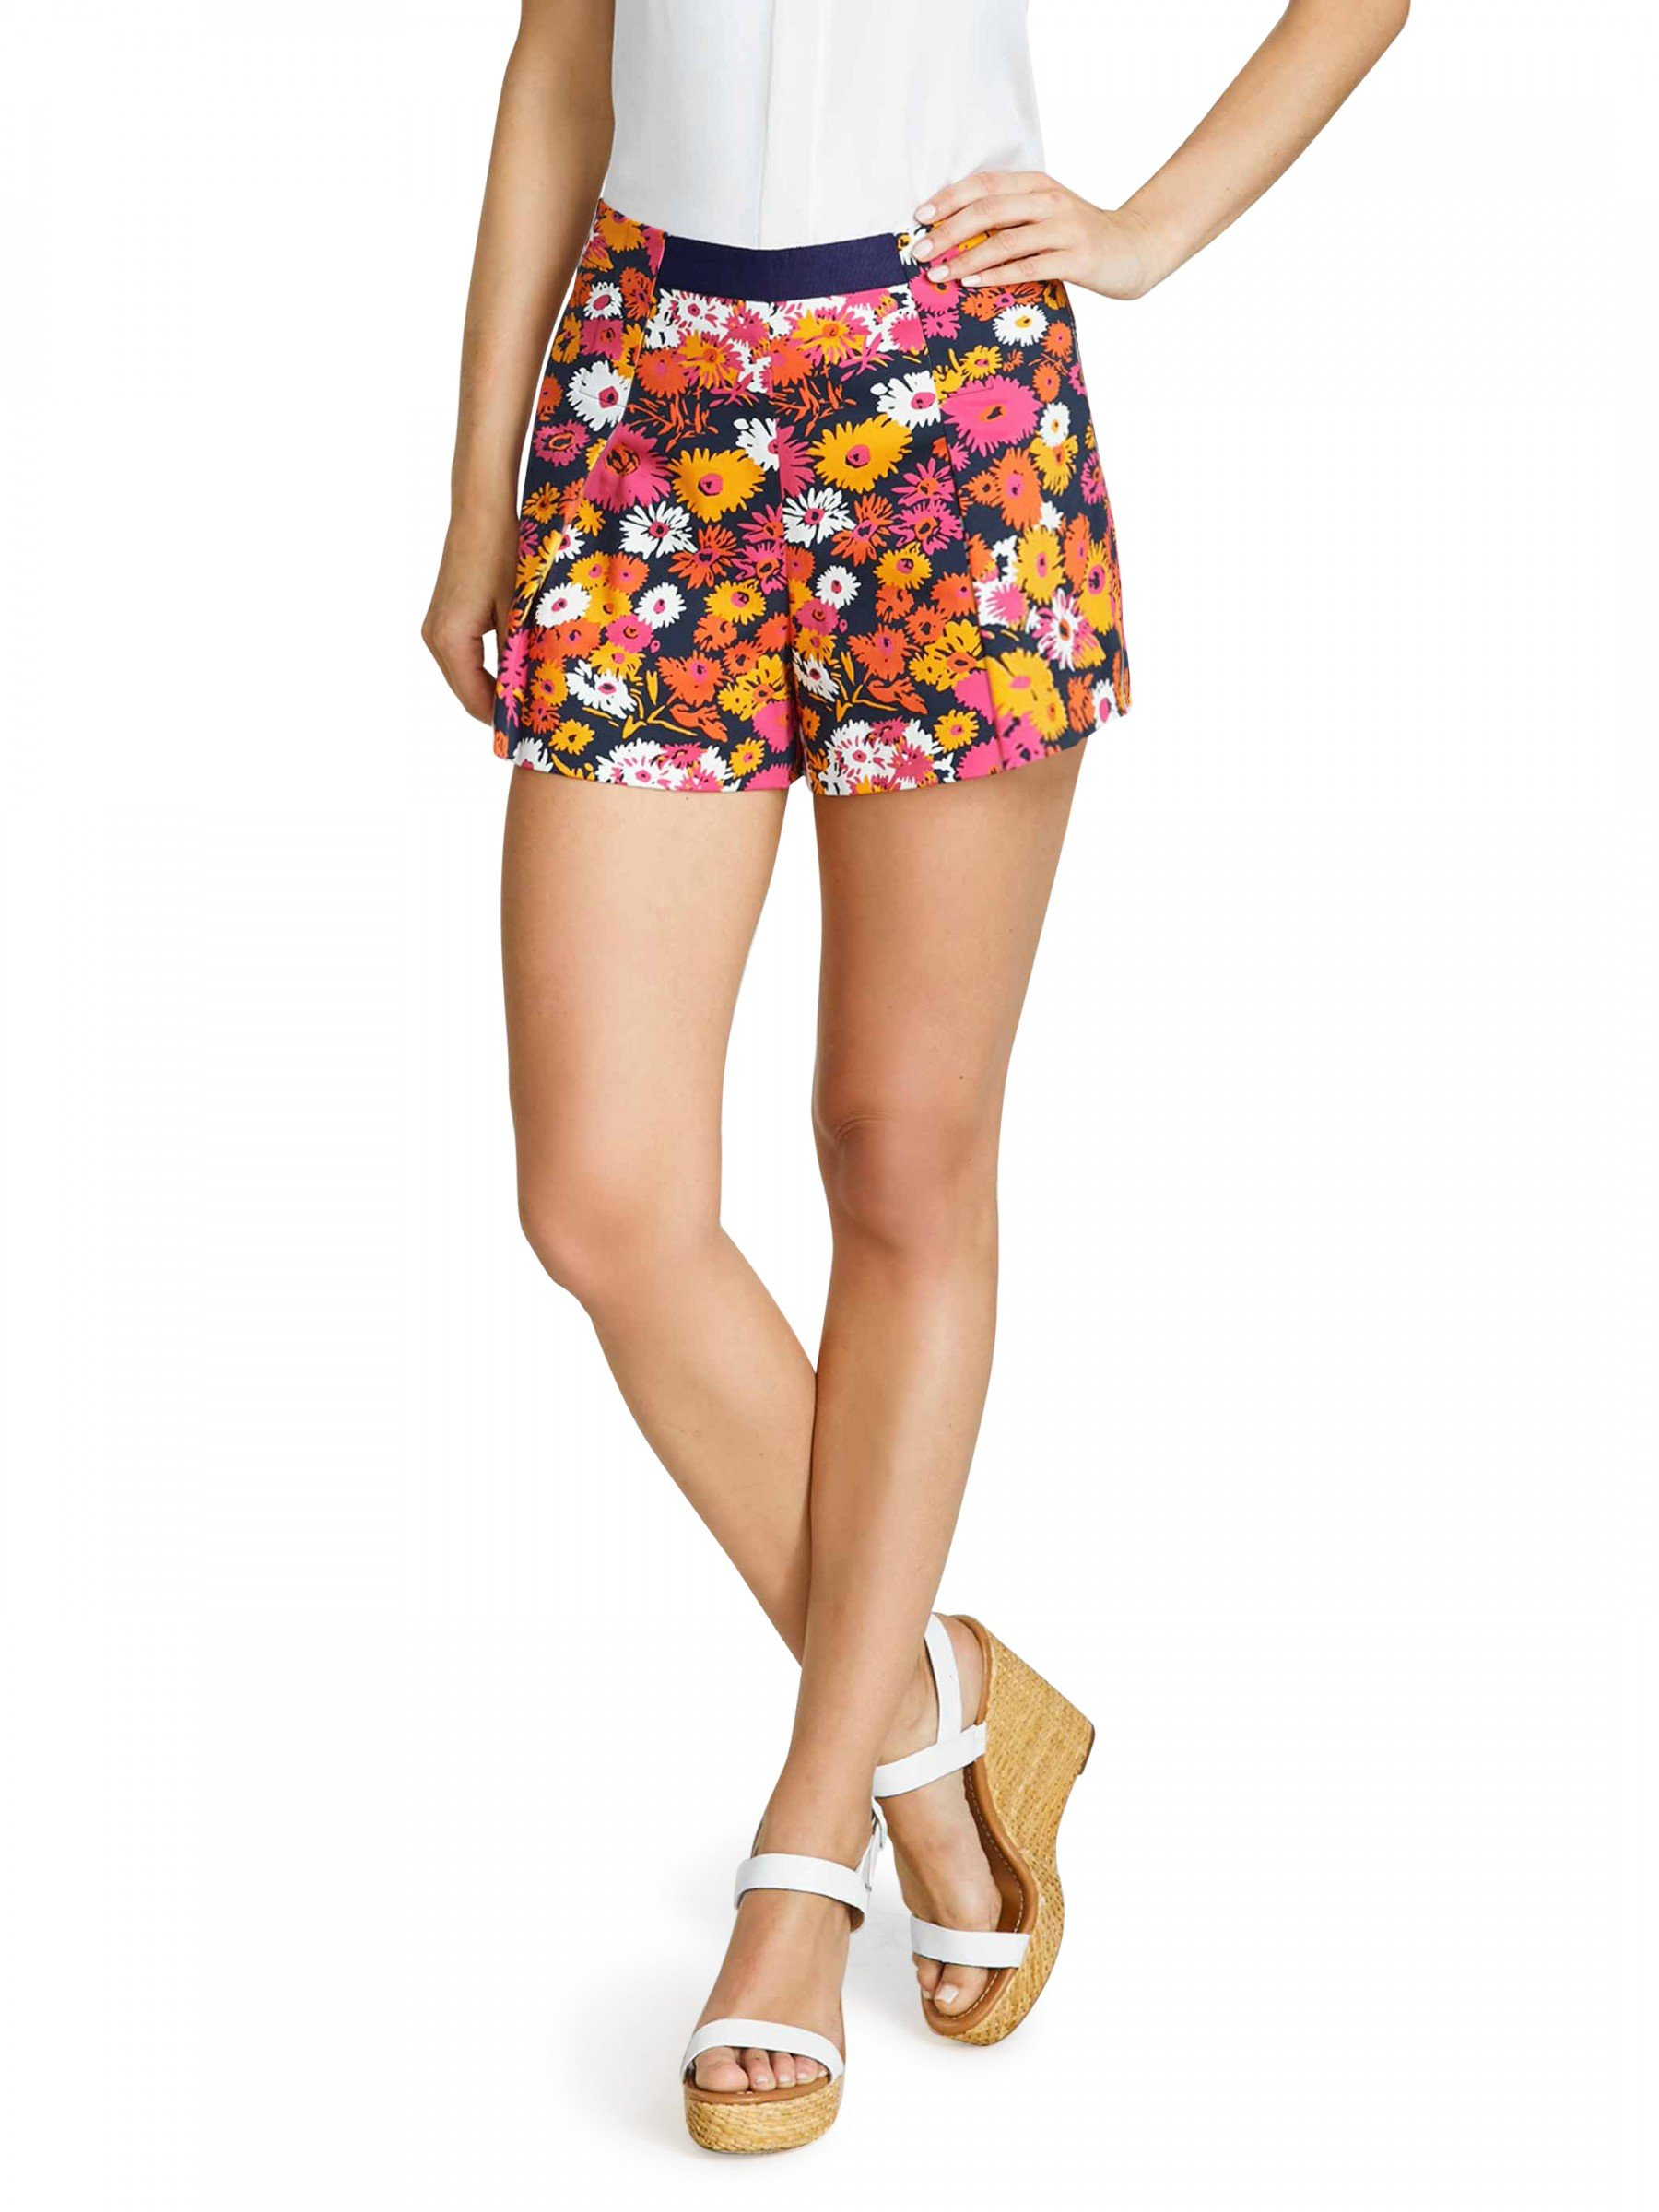 Draper James Women's Darlin' Daisy Sailor Short, Size 8 by Draper James (Image #1)